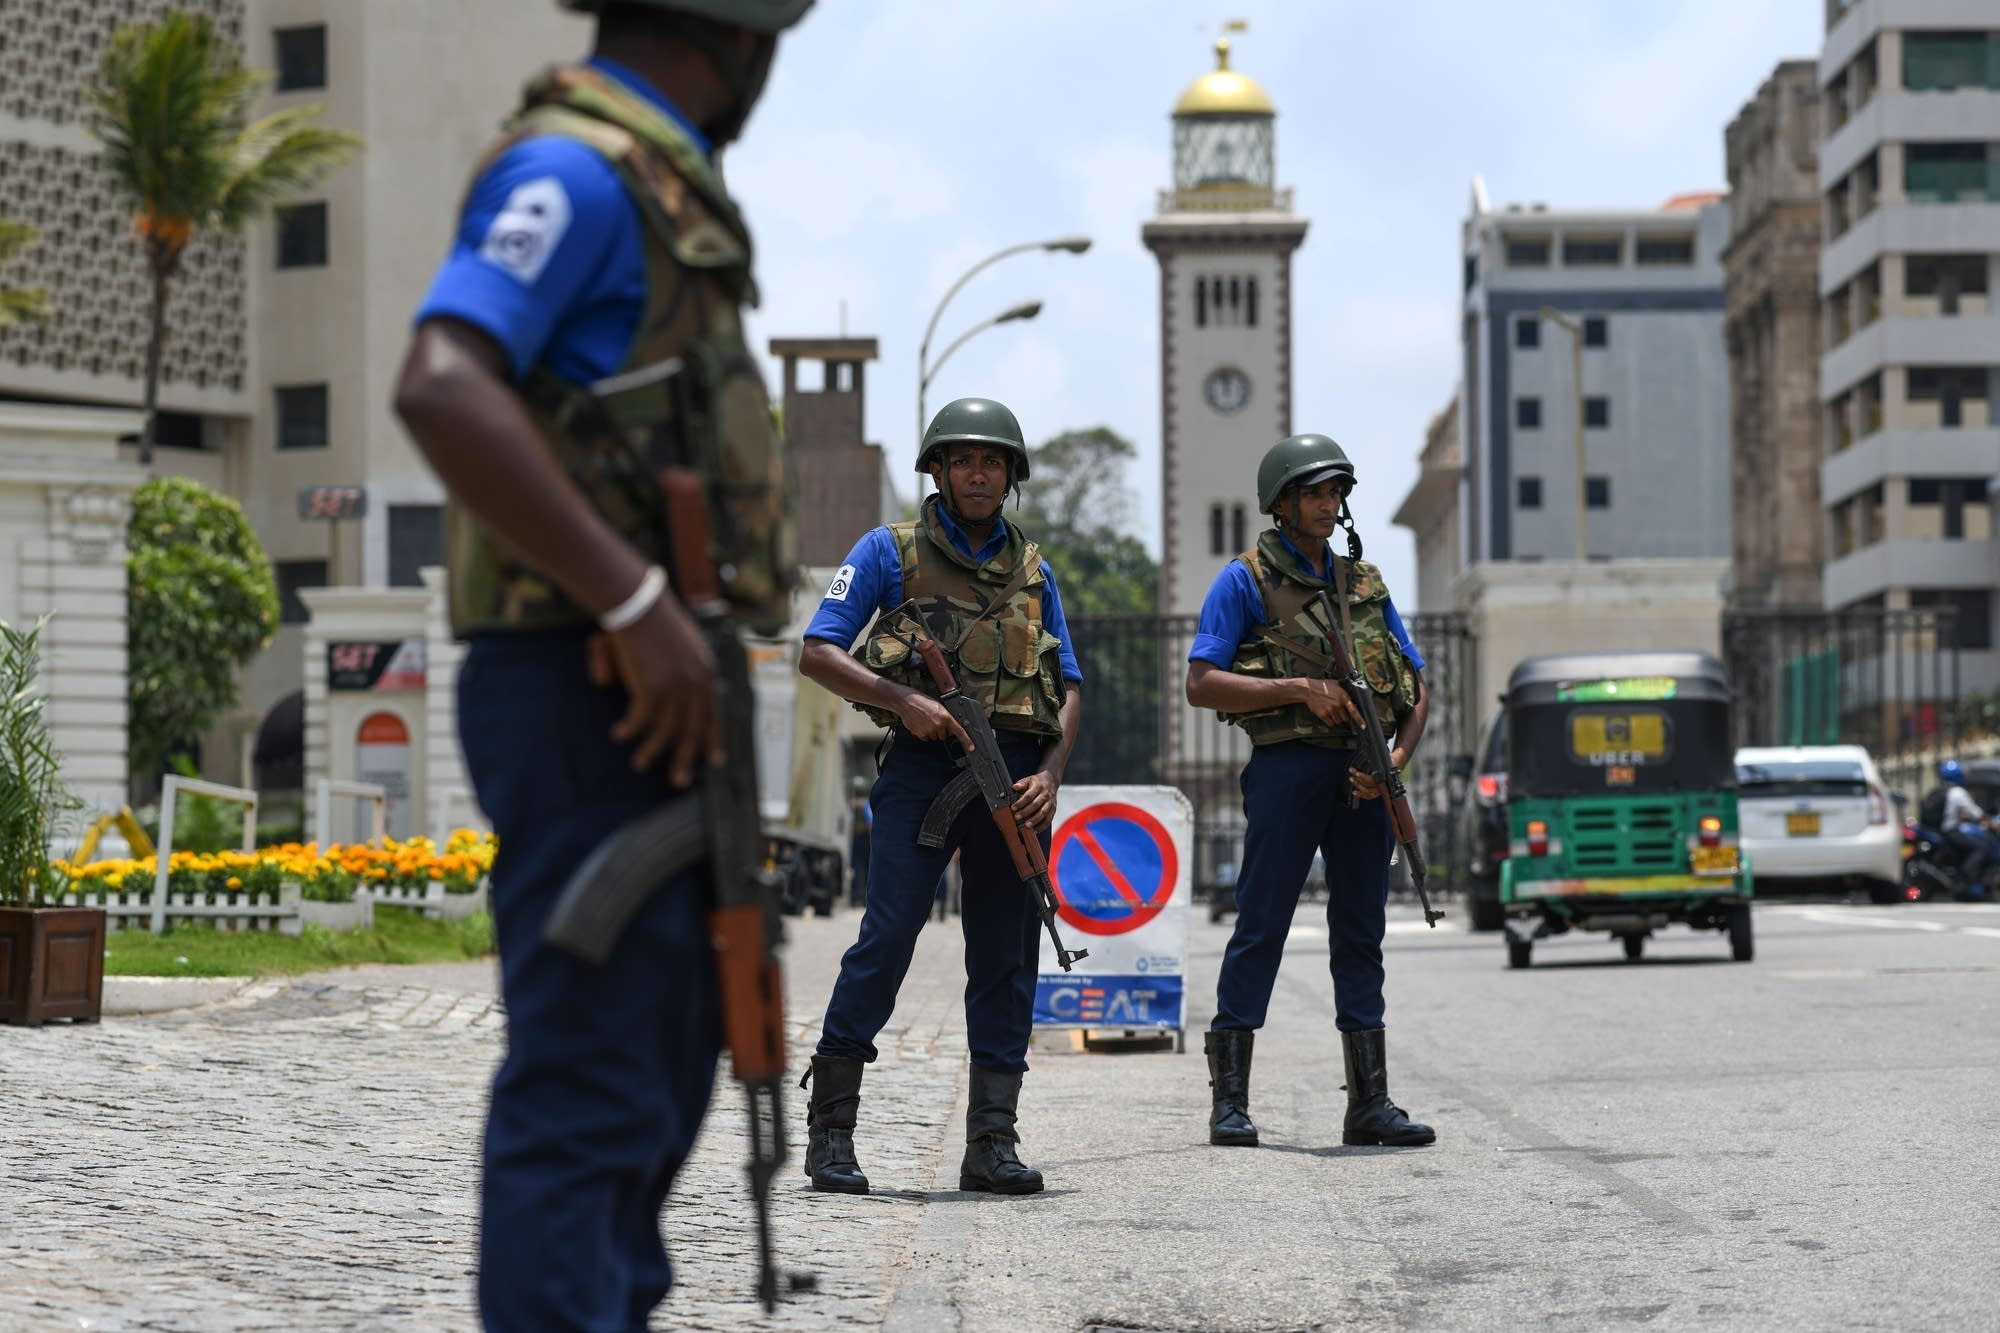 Soldiers take up their positions at a checkpoint on a street in Colombo.